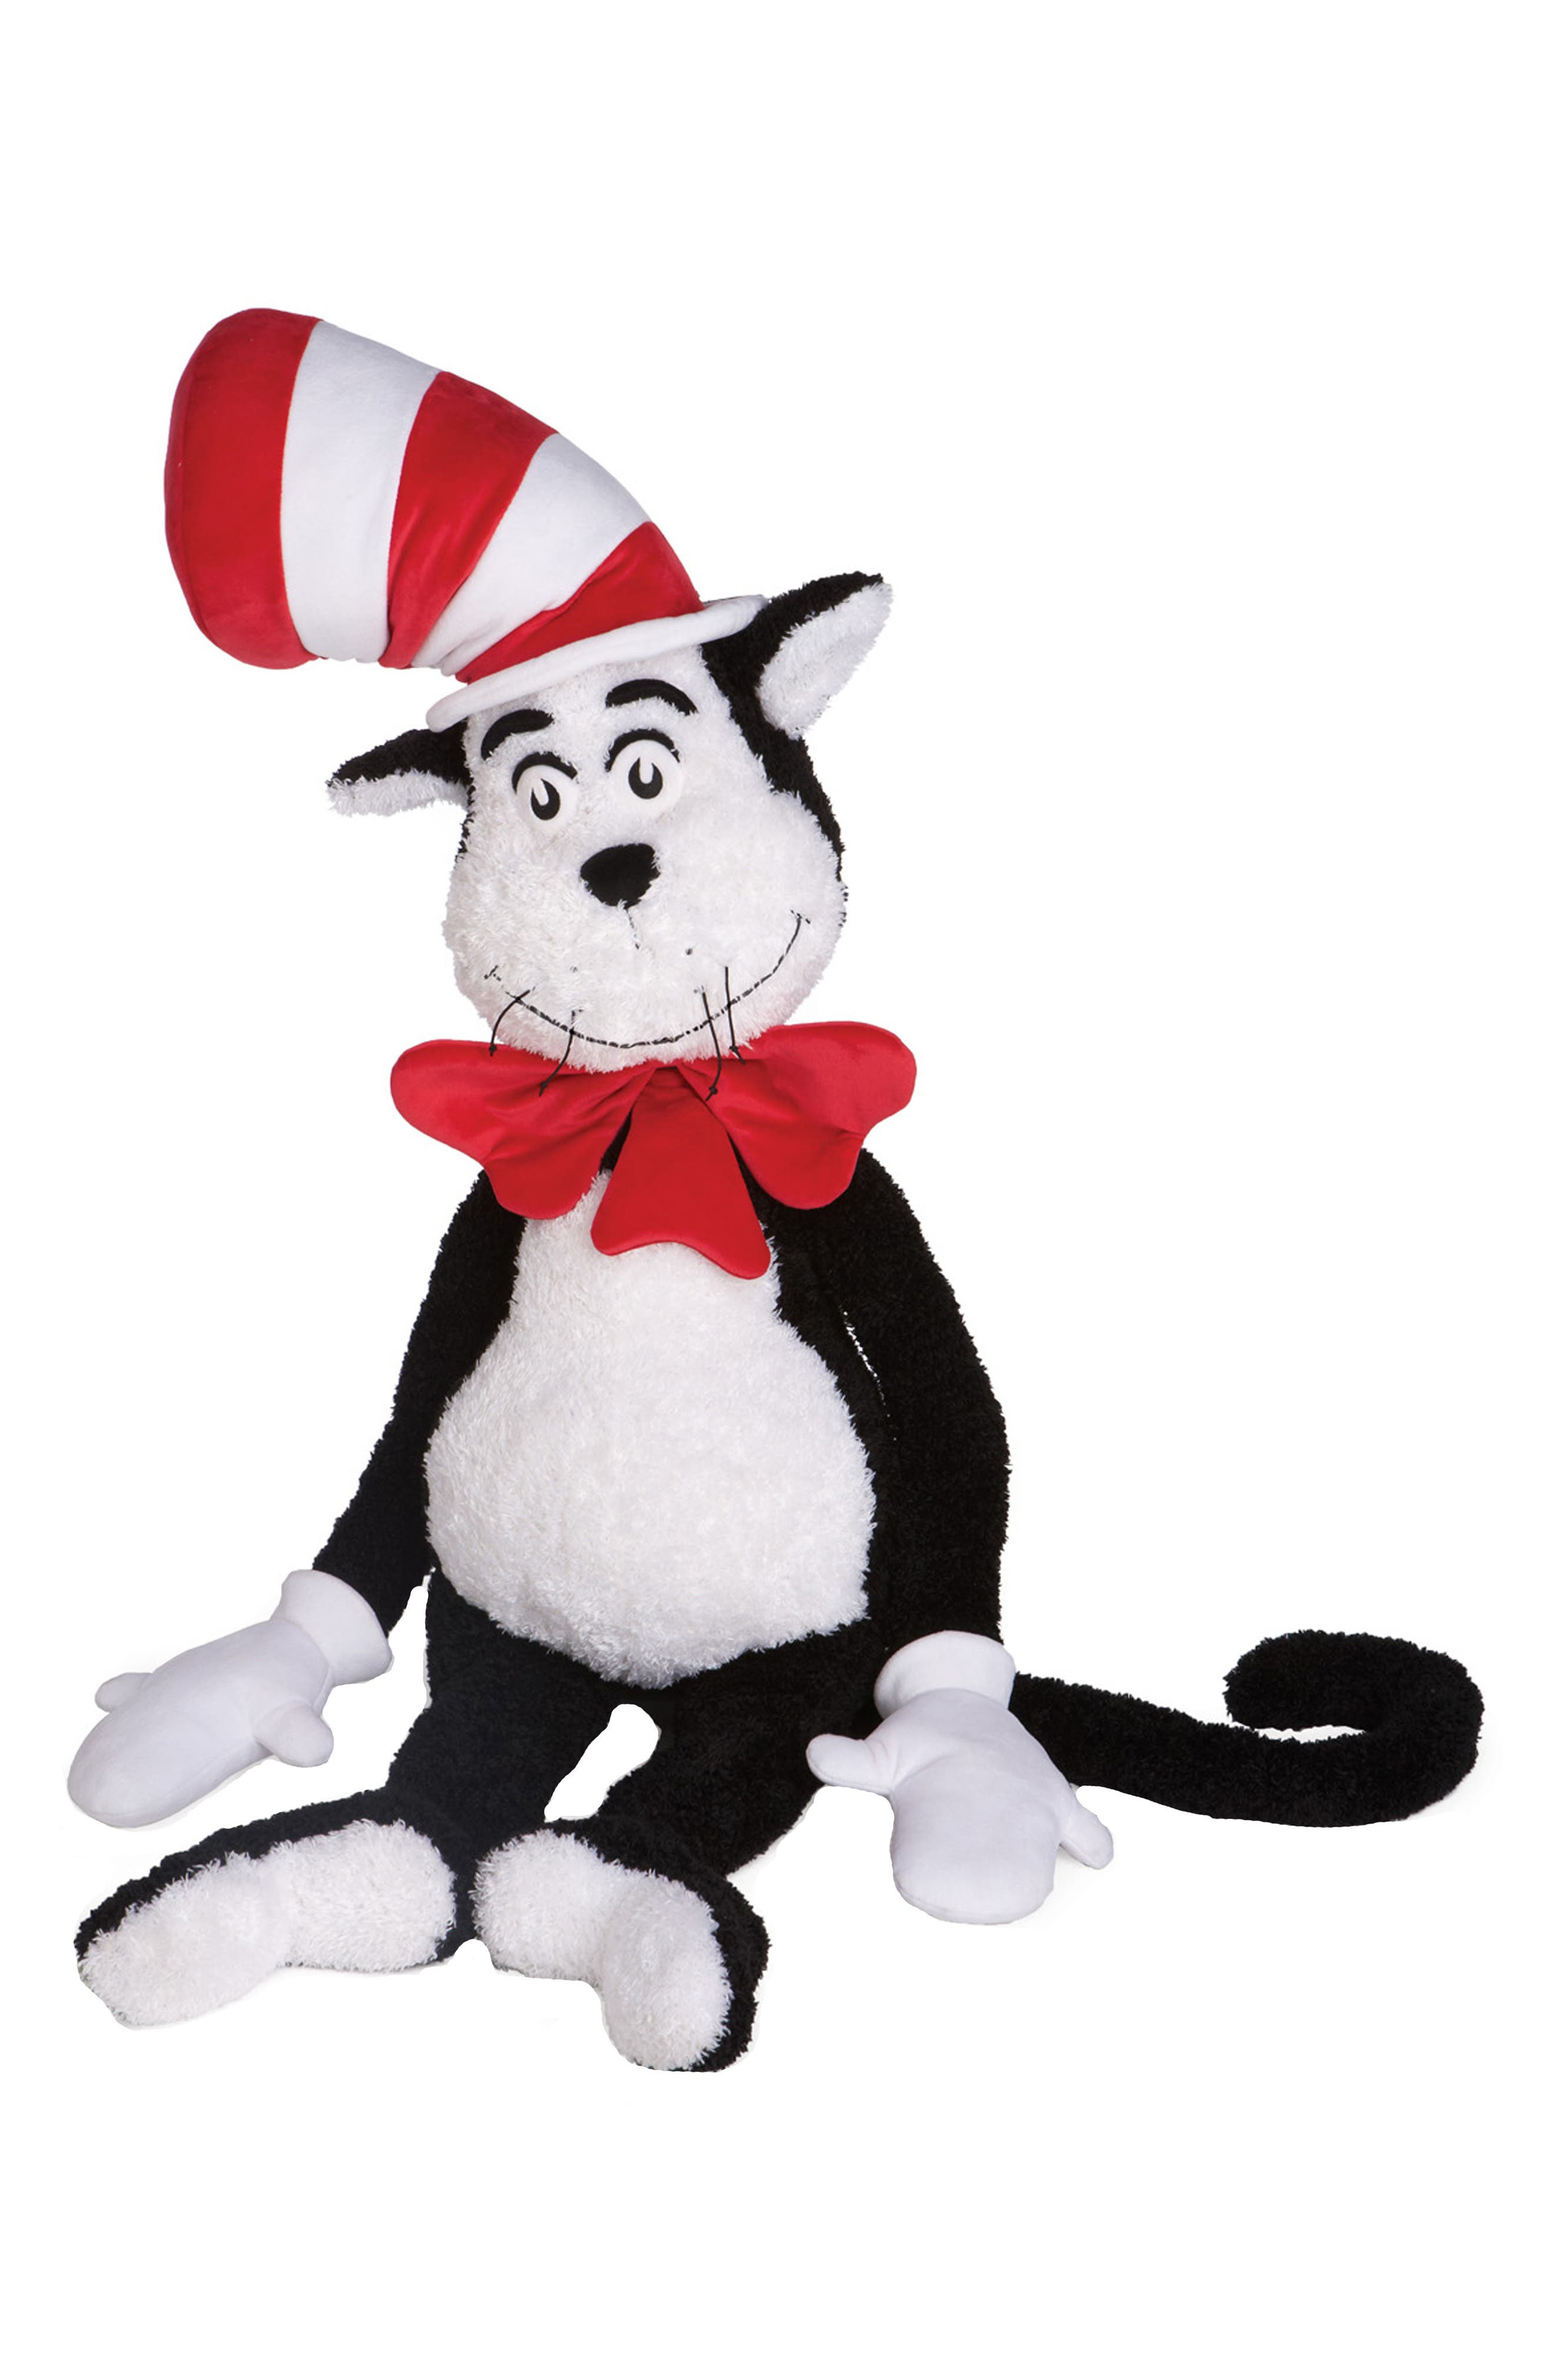 Dr. Seuss The Cat In The Hat Jumbo Stuffed Animal,                             Main thumbnail 1, color,                             001